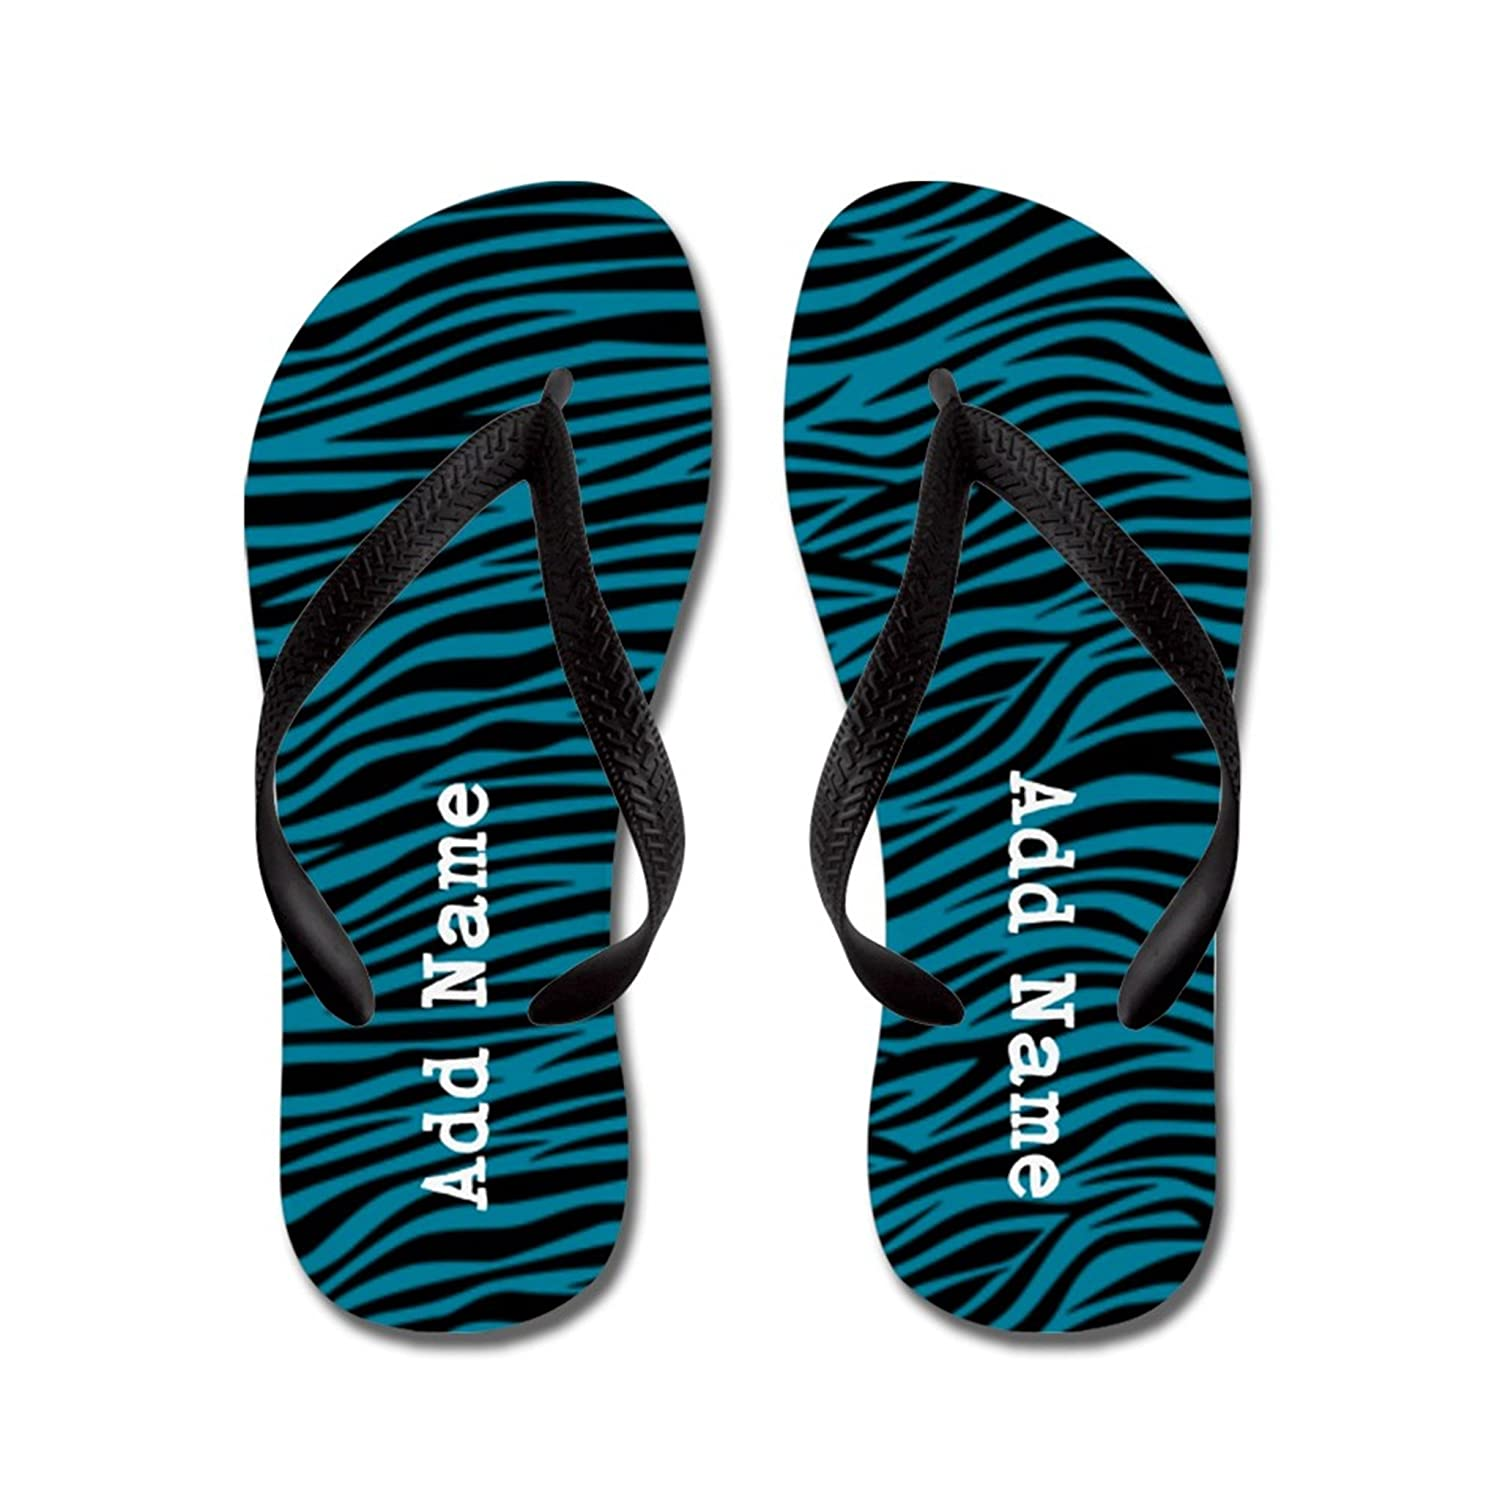 Lplpol Personalizable Customized Zebra Stripes Teal Flip Flops for Kids and Adult Unisex Beach Sandals Pool Shoes Party Slippers